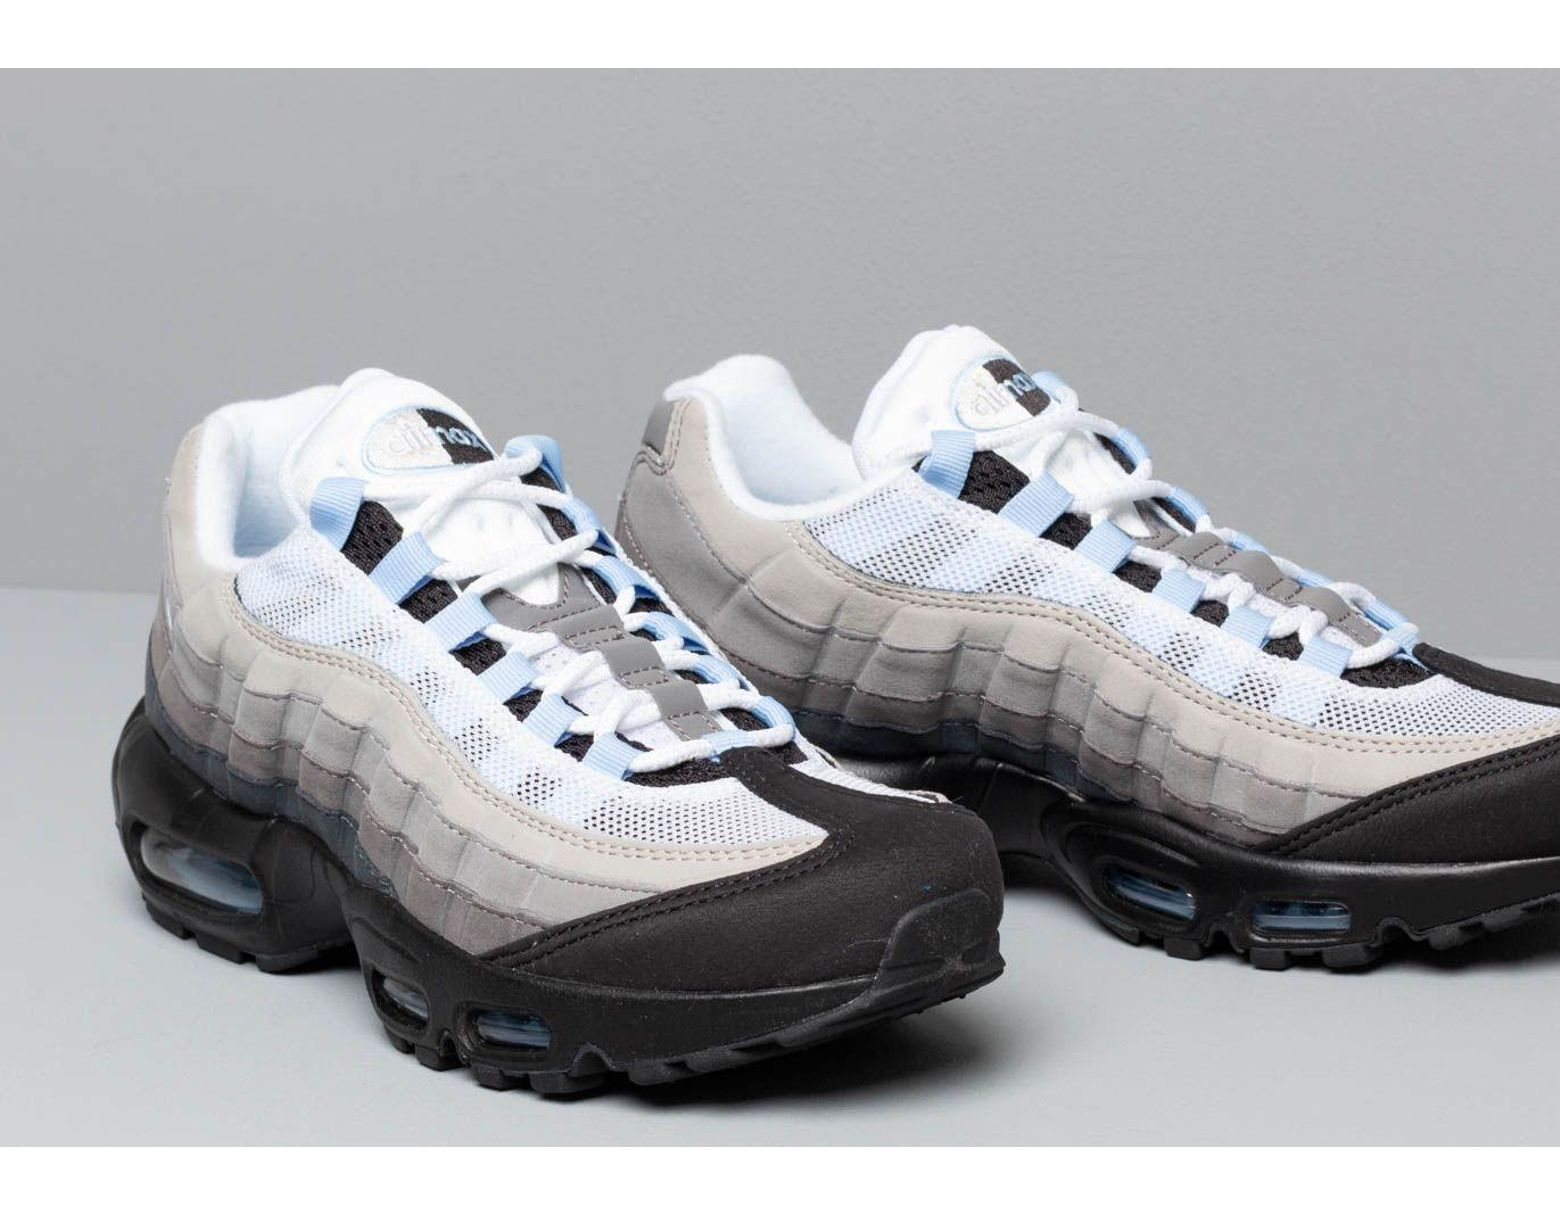 half off 6b9e4 7195b Nike Air Max 95 Black  Aluminum-anthracite in Black for Men - Save 2% - Lyst